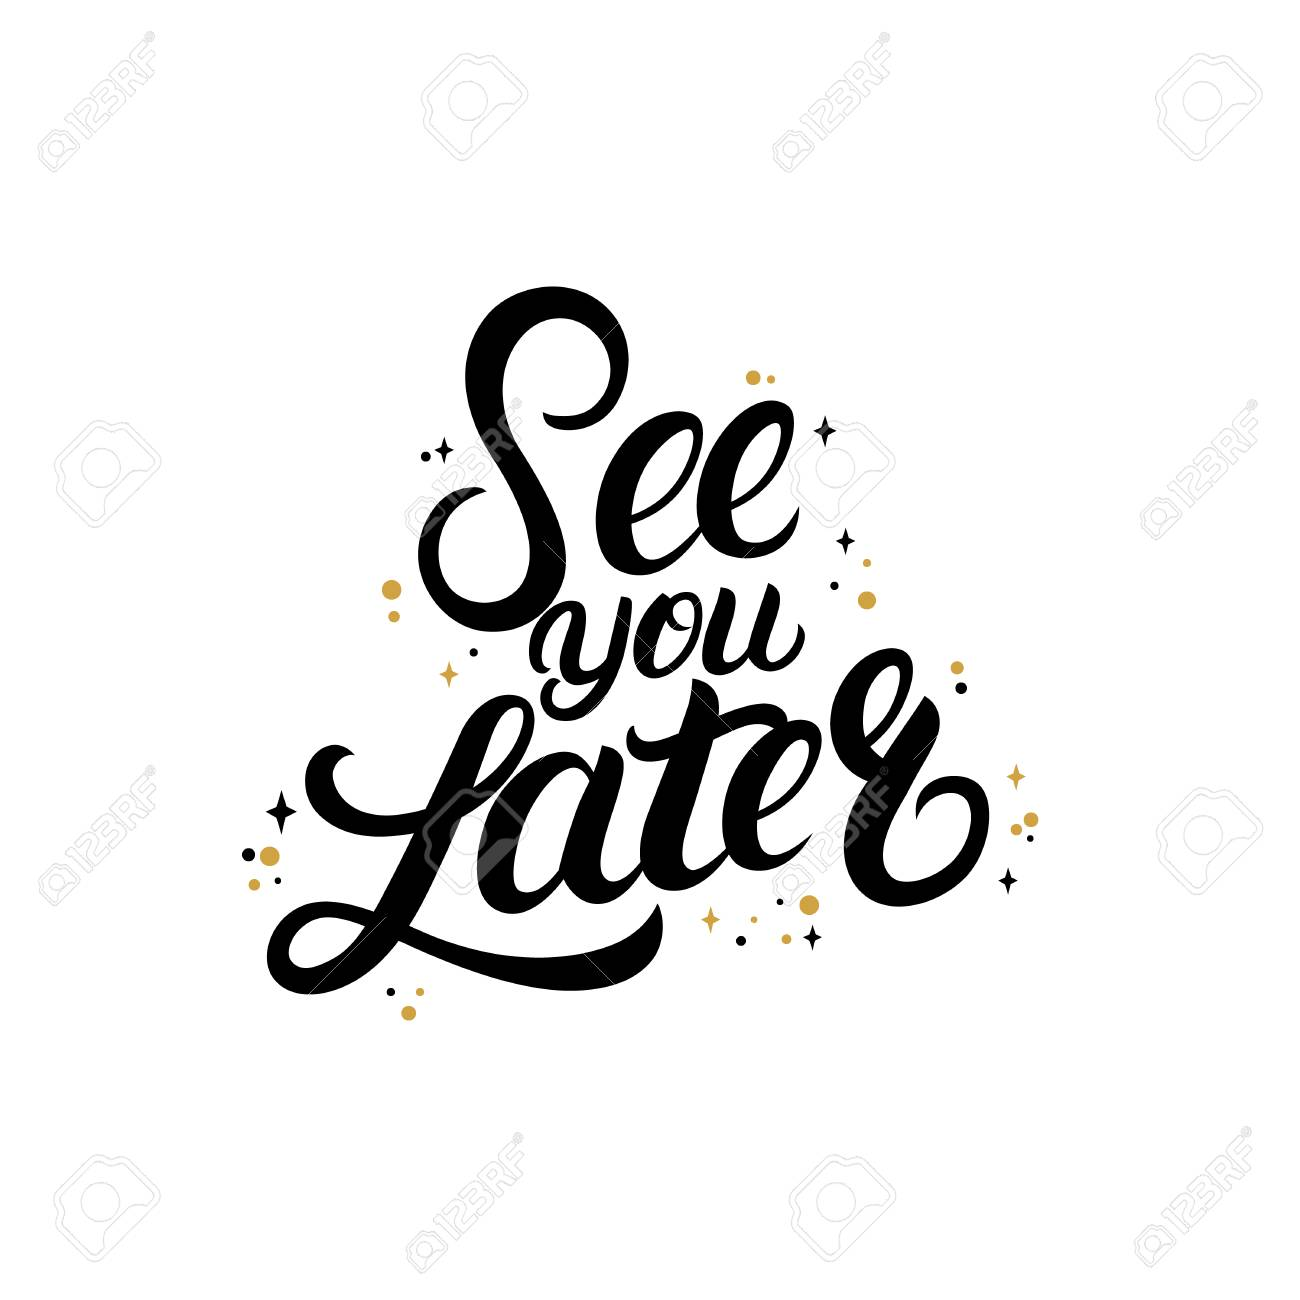 See You Later Hand Written Lettering With Stars. Royalty Free Cliparts, Vectors, And Stock Illustration. Image 90059588.